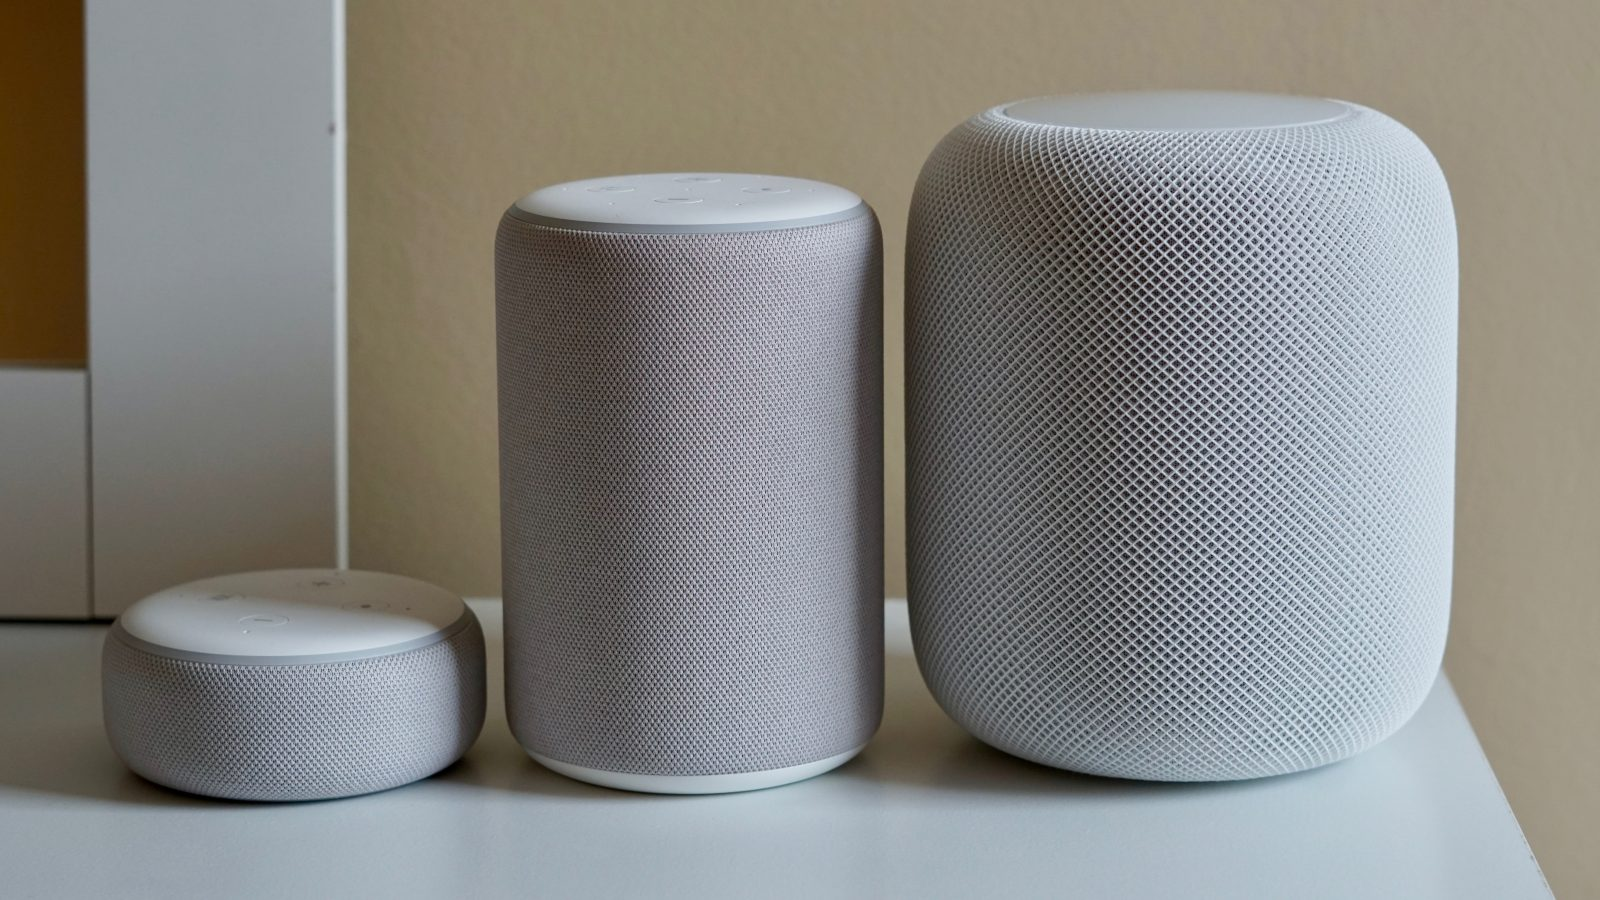 photo of Active smart speakers estimated to hit over 200 million this year, HomePod reach could be a factor image